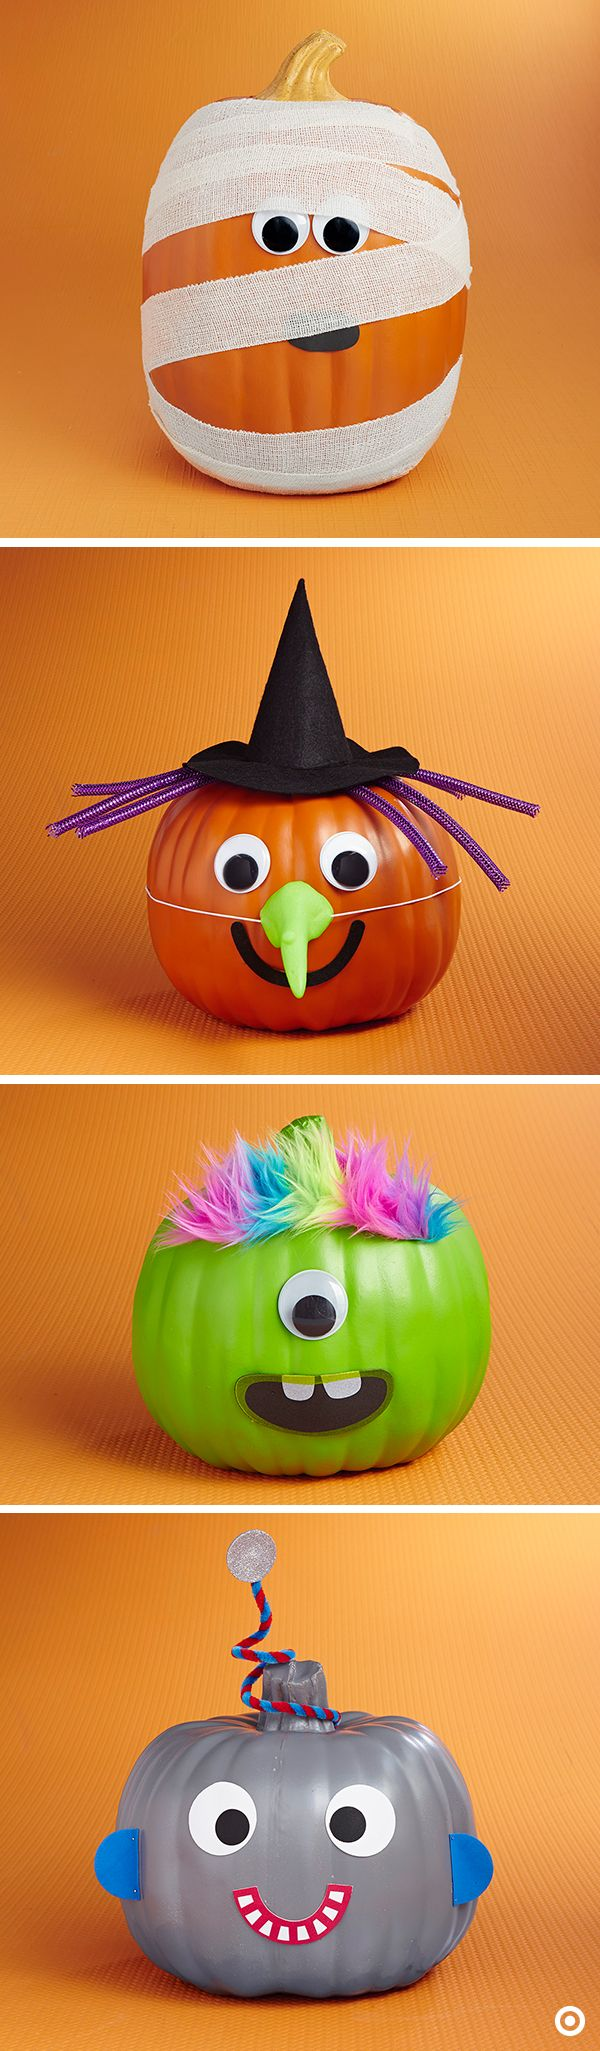 It's an all-out costume party for these quirky pumpkins! For a new twist on traditional jack-o-lanterns, use a DIY decorating kit to easily turn them into just about any Halloween character, like a mummy, witch, monster or robot. And, the best part is, no carving required!